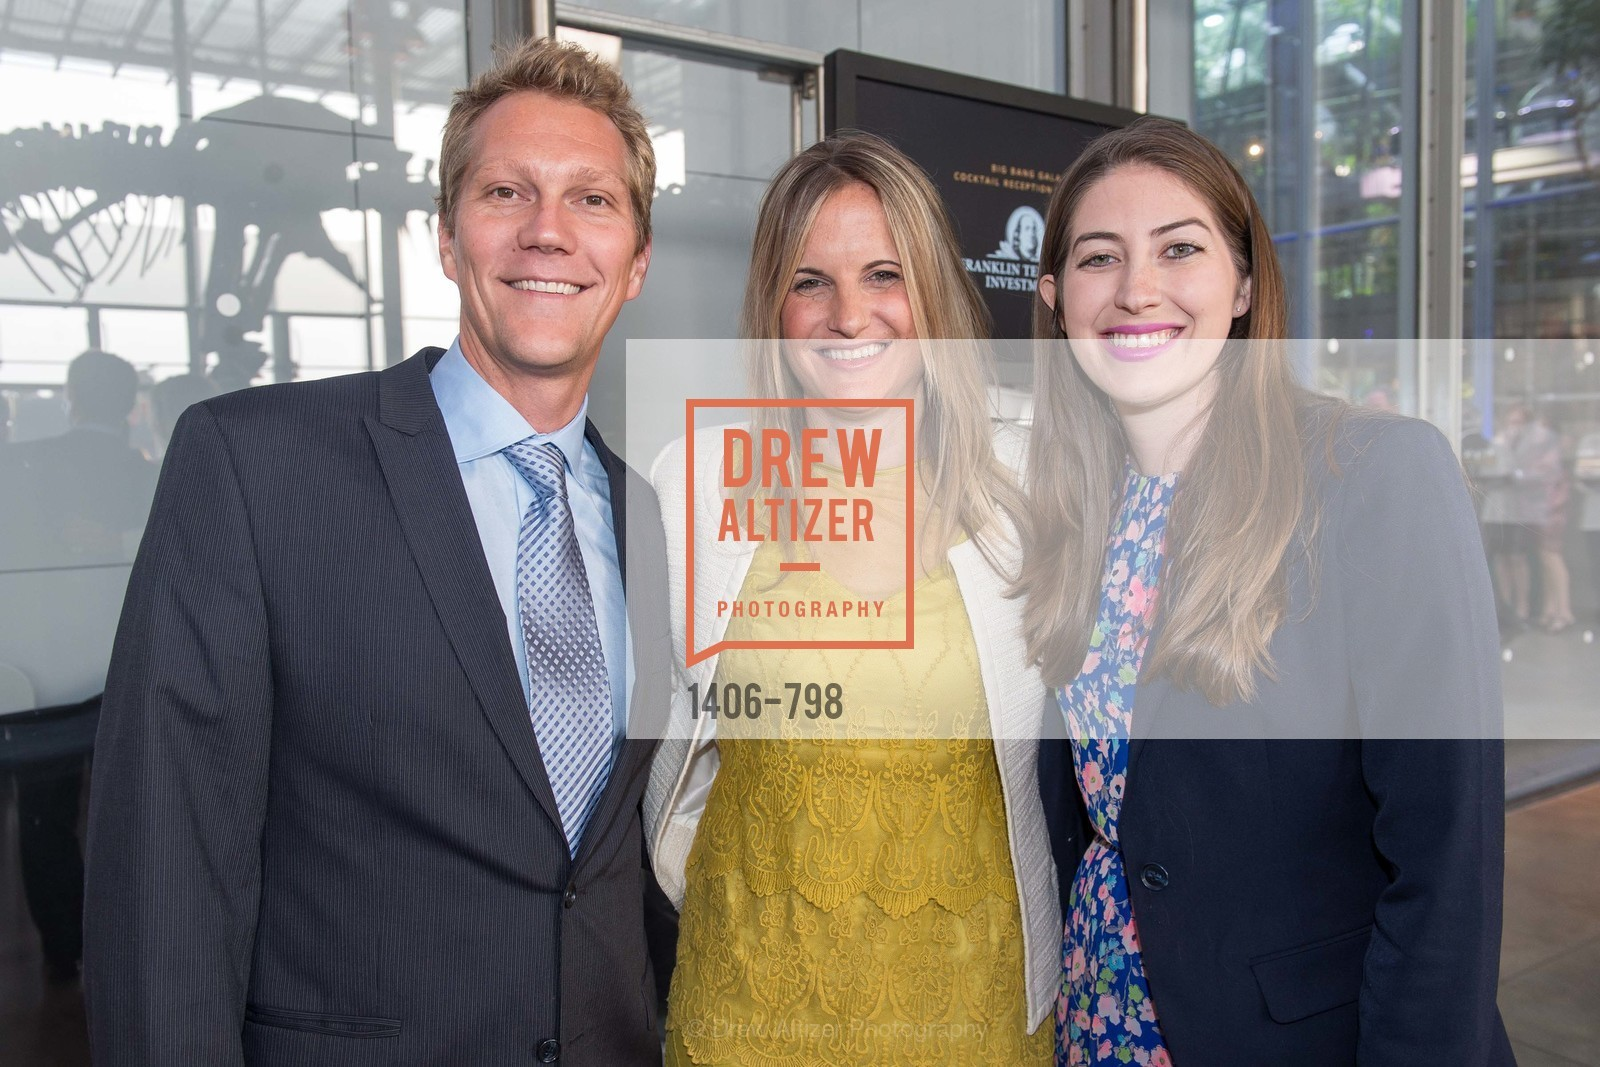 Matt Sorgenfrei, Alexis Bechtol, Sara Jones, CALIFORNIA ACADEMY OF SCIENCES - Big Bang Gala 2015, US, April 23rd, 2015,Drew Altizer, Drew Altizer Photography, full-service agency, private events, San Francisco photographer, photographer california